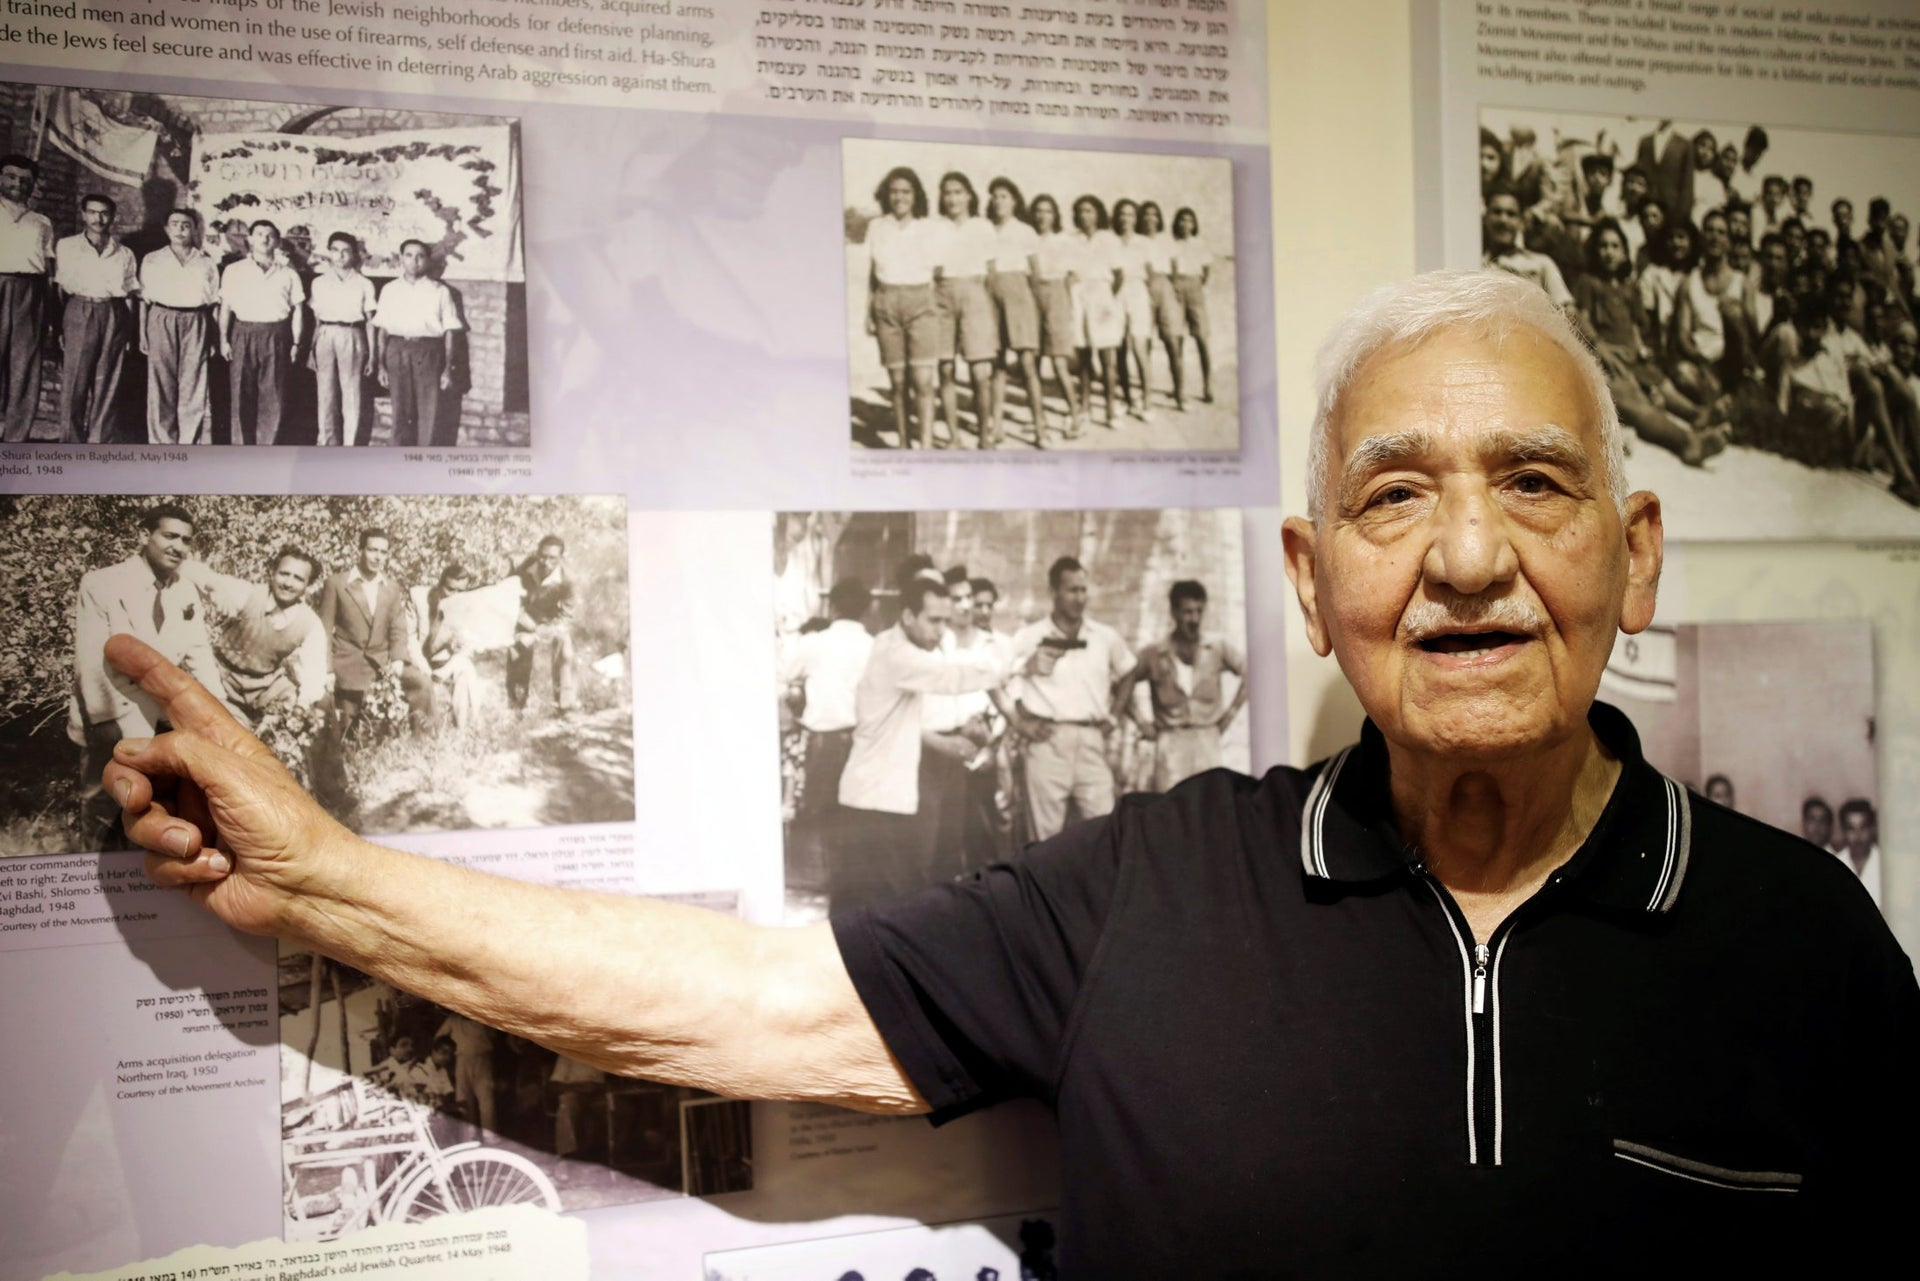 Zevulun Hareli, 90, who immigrated from Iraq to Israel in 1949, points at photos on display at the Babylonian Jewry Heritage Center in Or Yehuda, Israel, April 16, 2018.